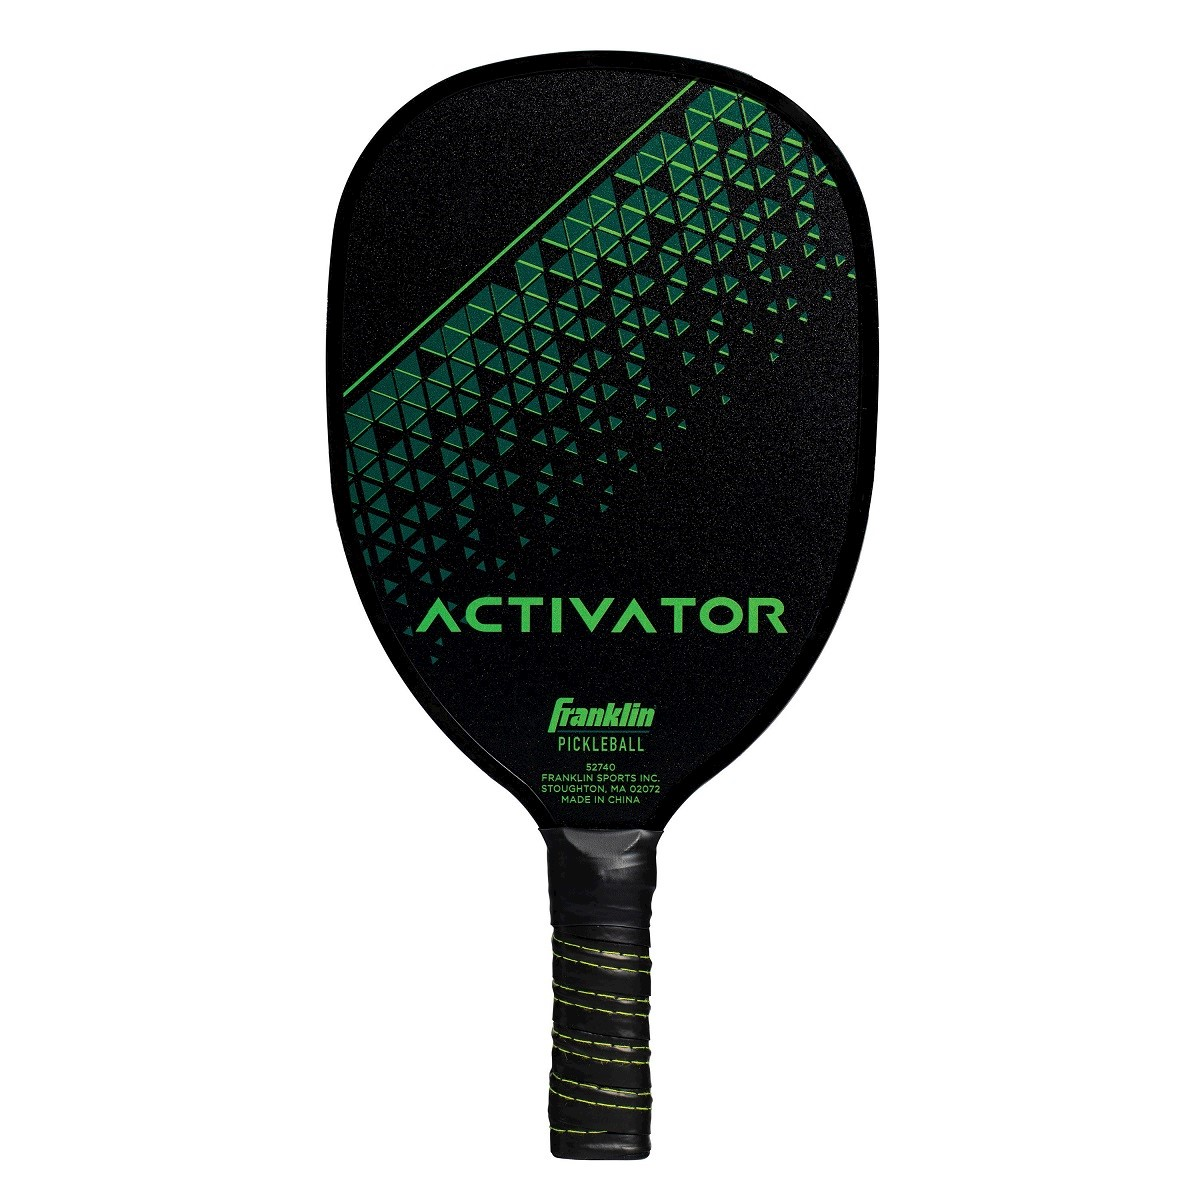 Franklin Sports Activator Recreation Pickleball Paddle - Green THUMBNAIL